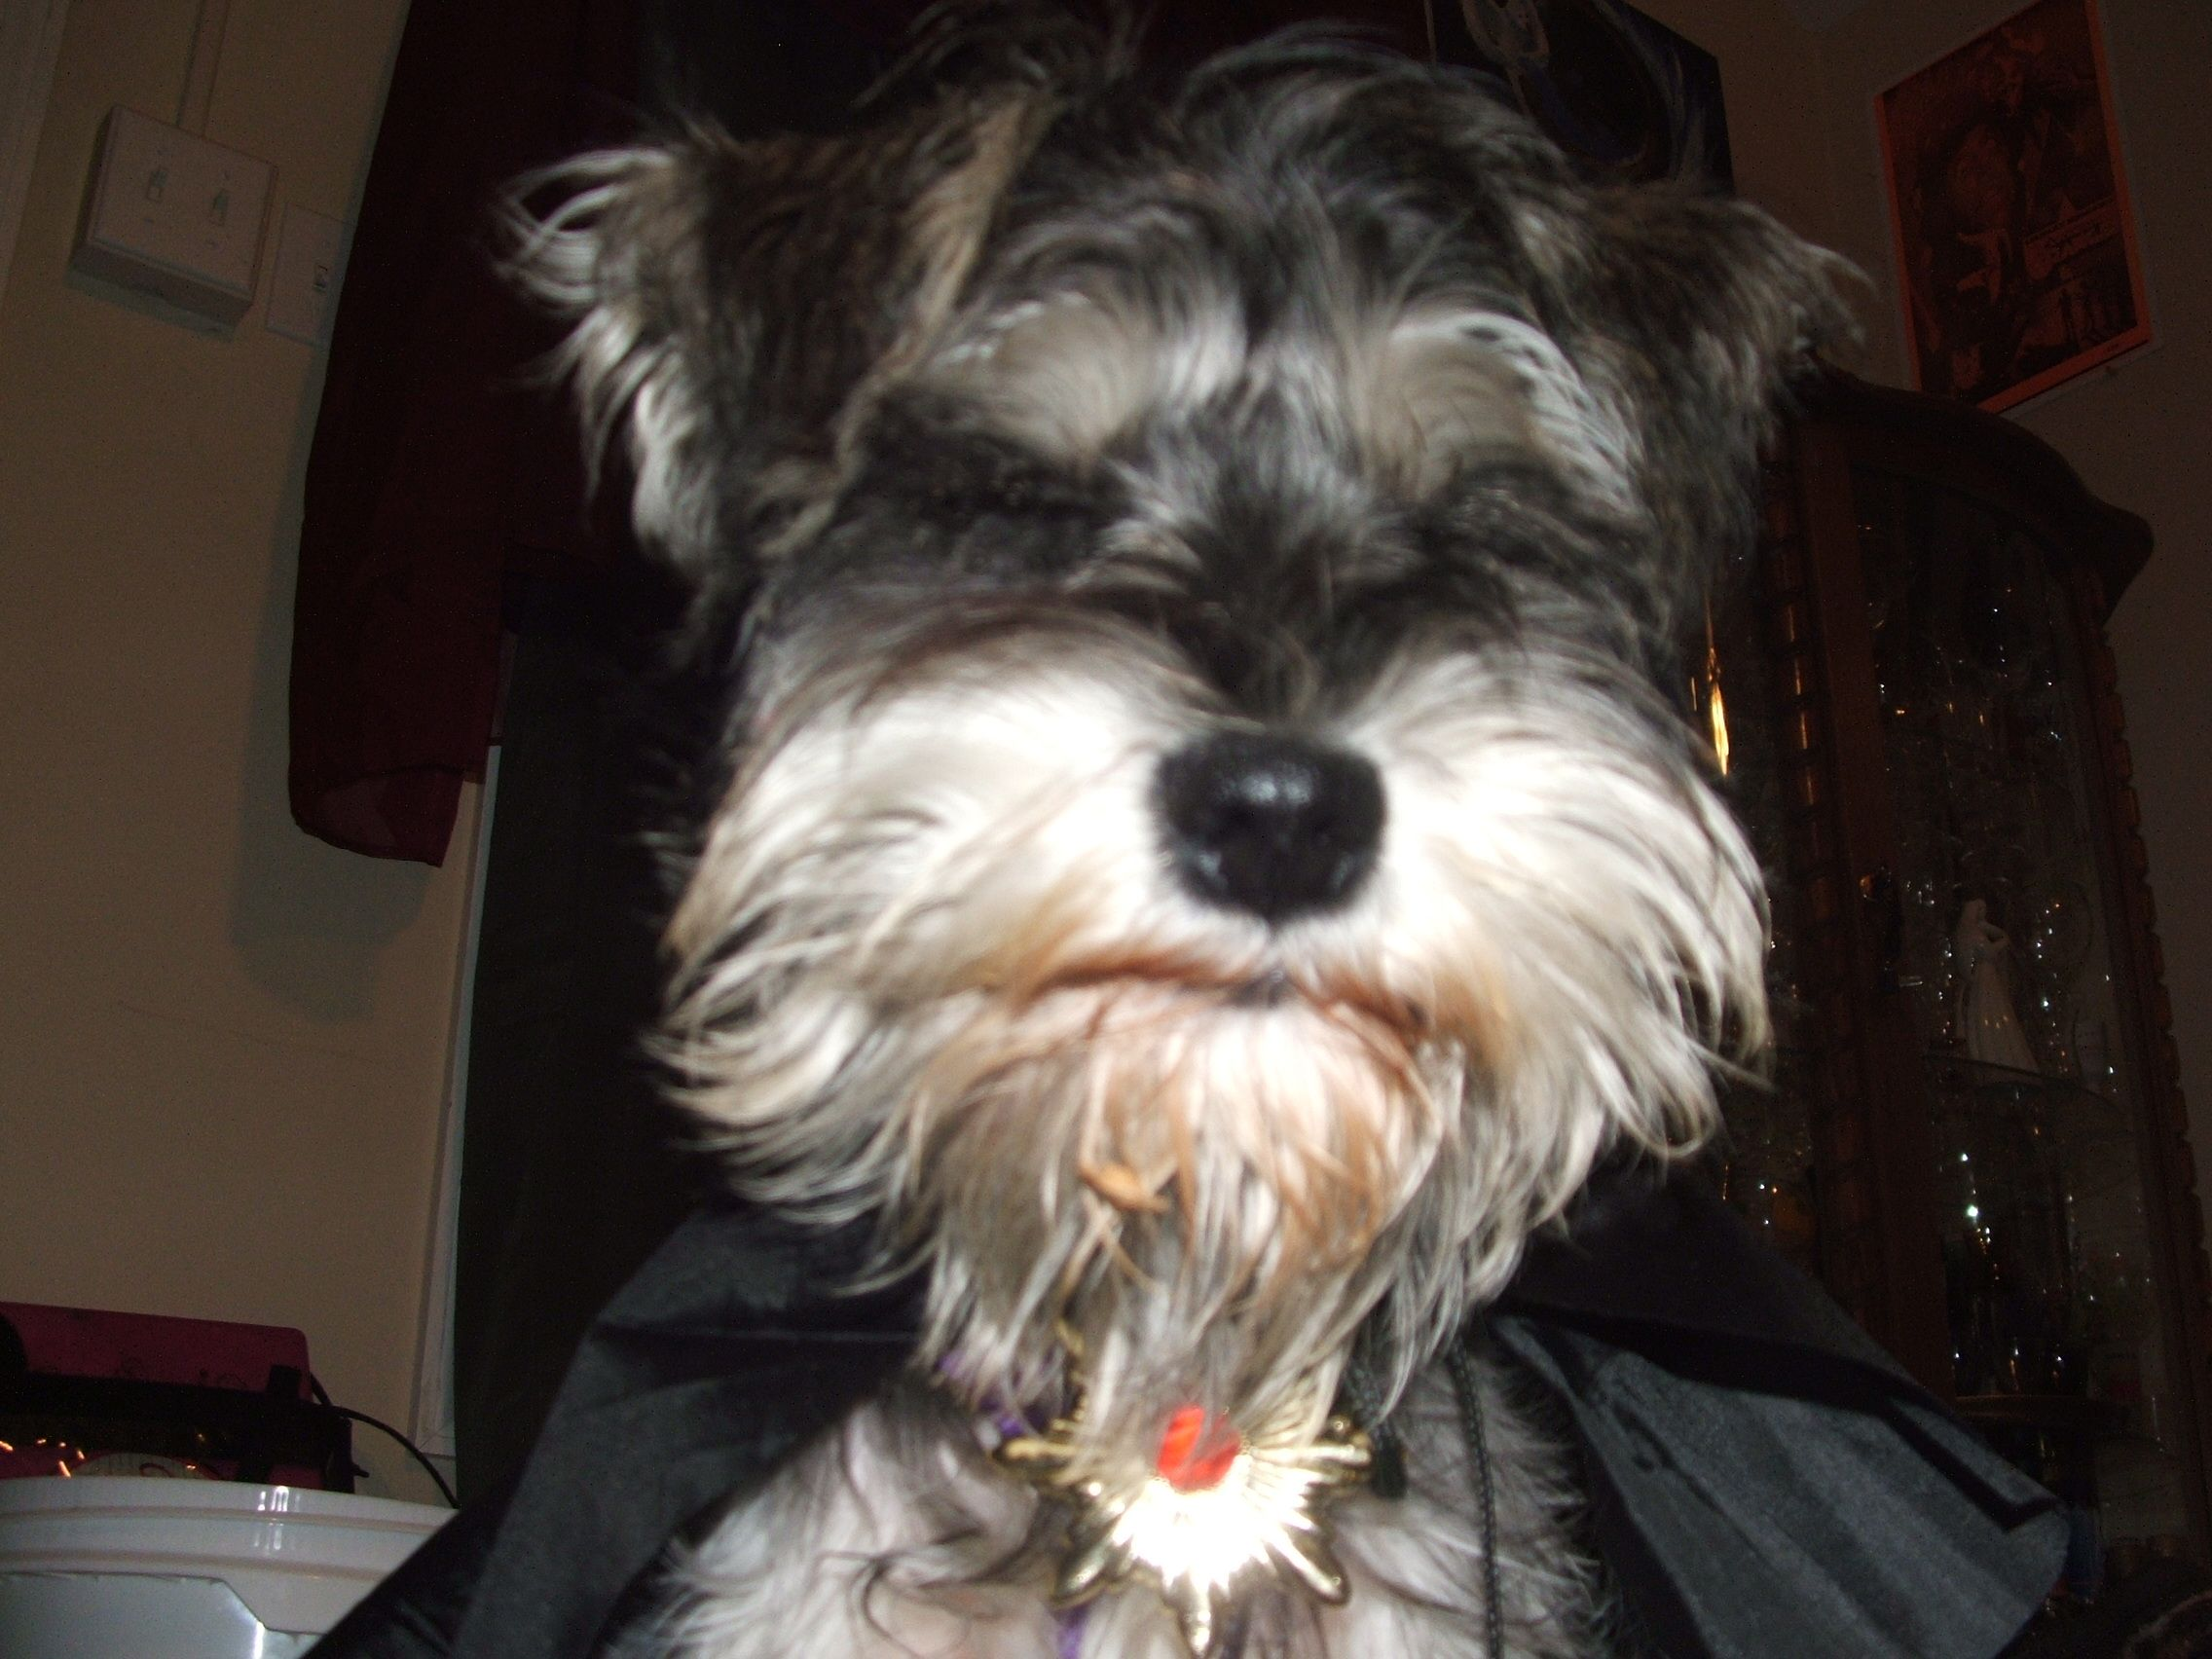 Salty Dog says can't make me look. #puppy #schnauzer #cute